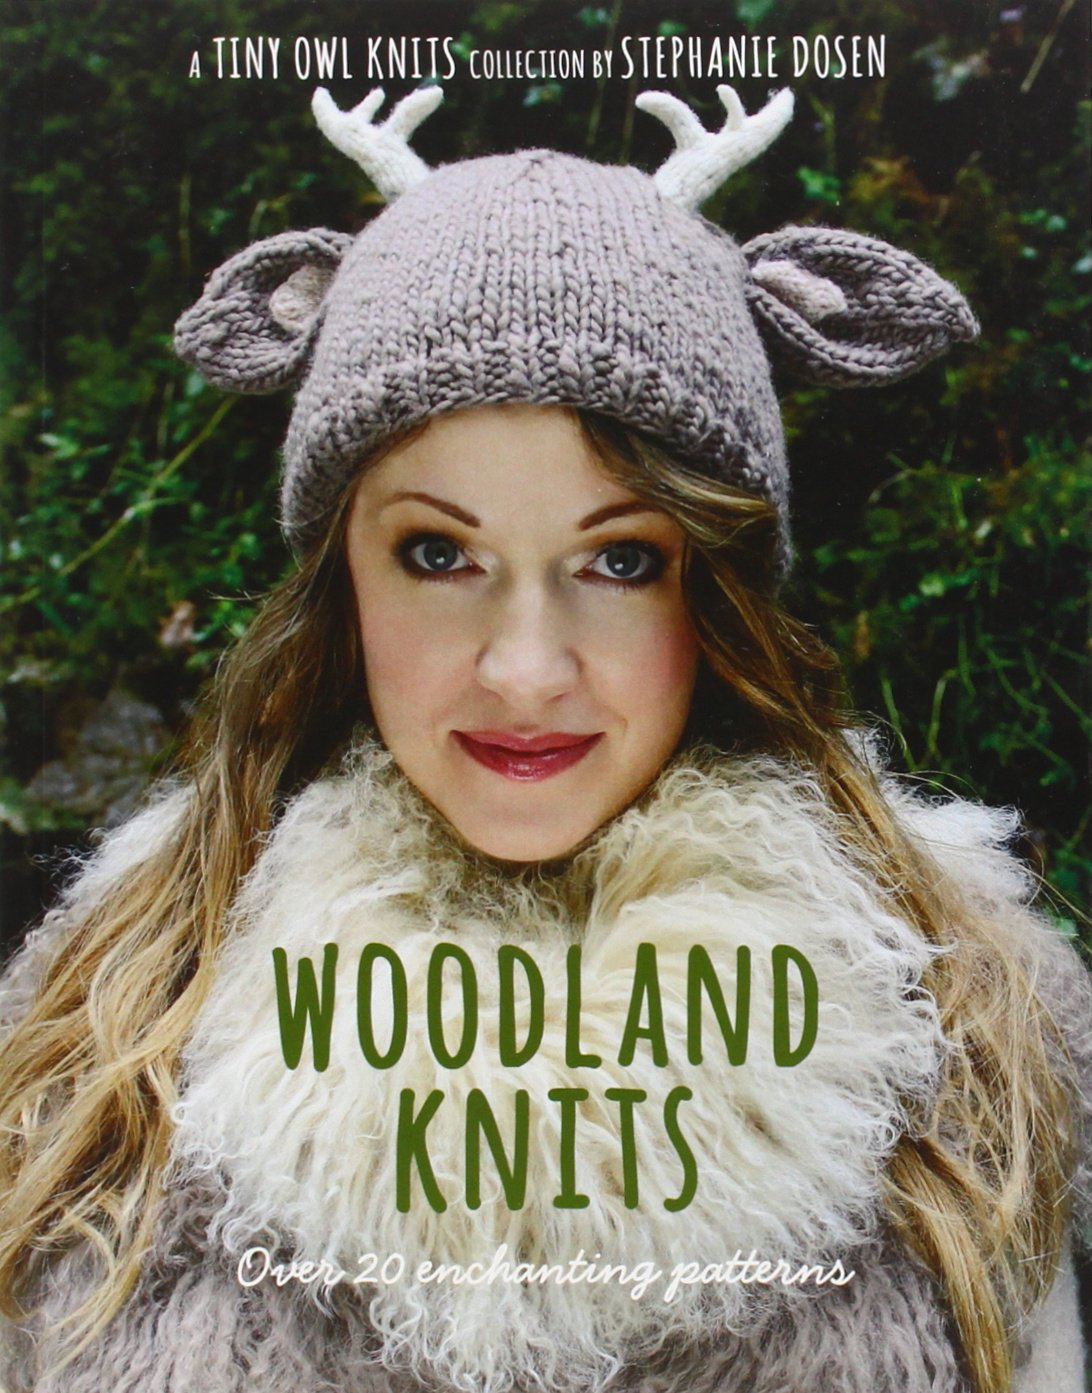 Woodland Knits over enchanting patterns